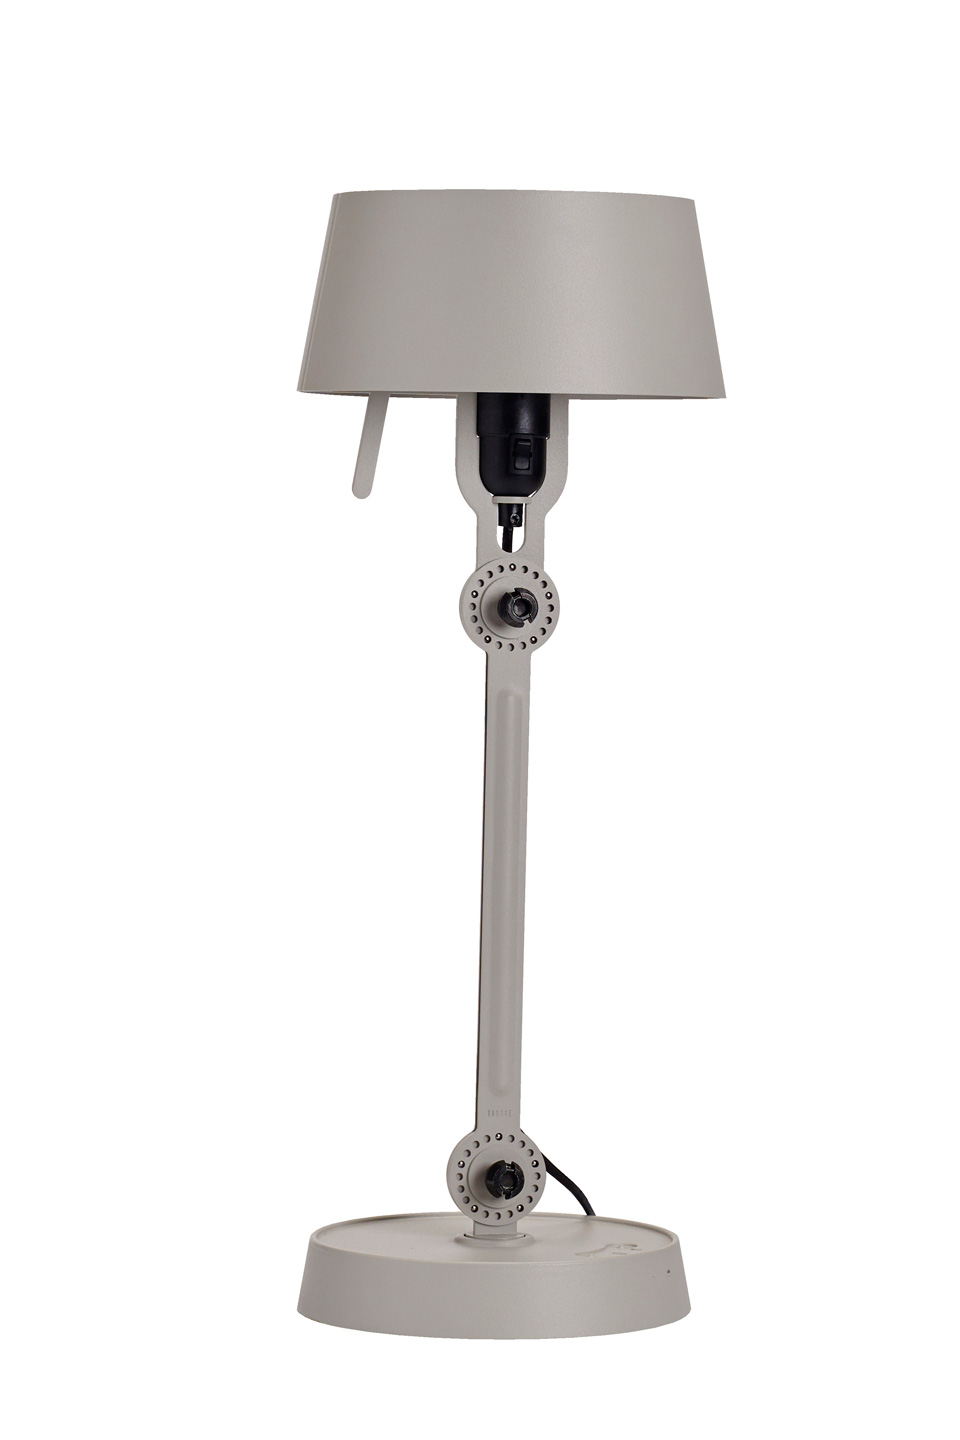 Little gray table lamp in steel, industrial style. Tonone.